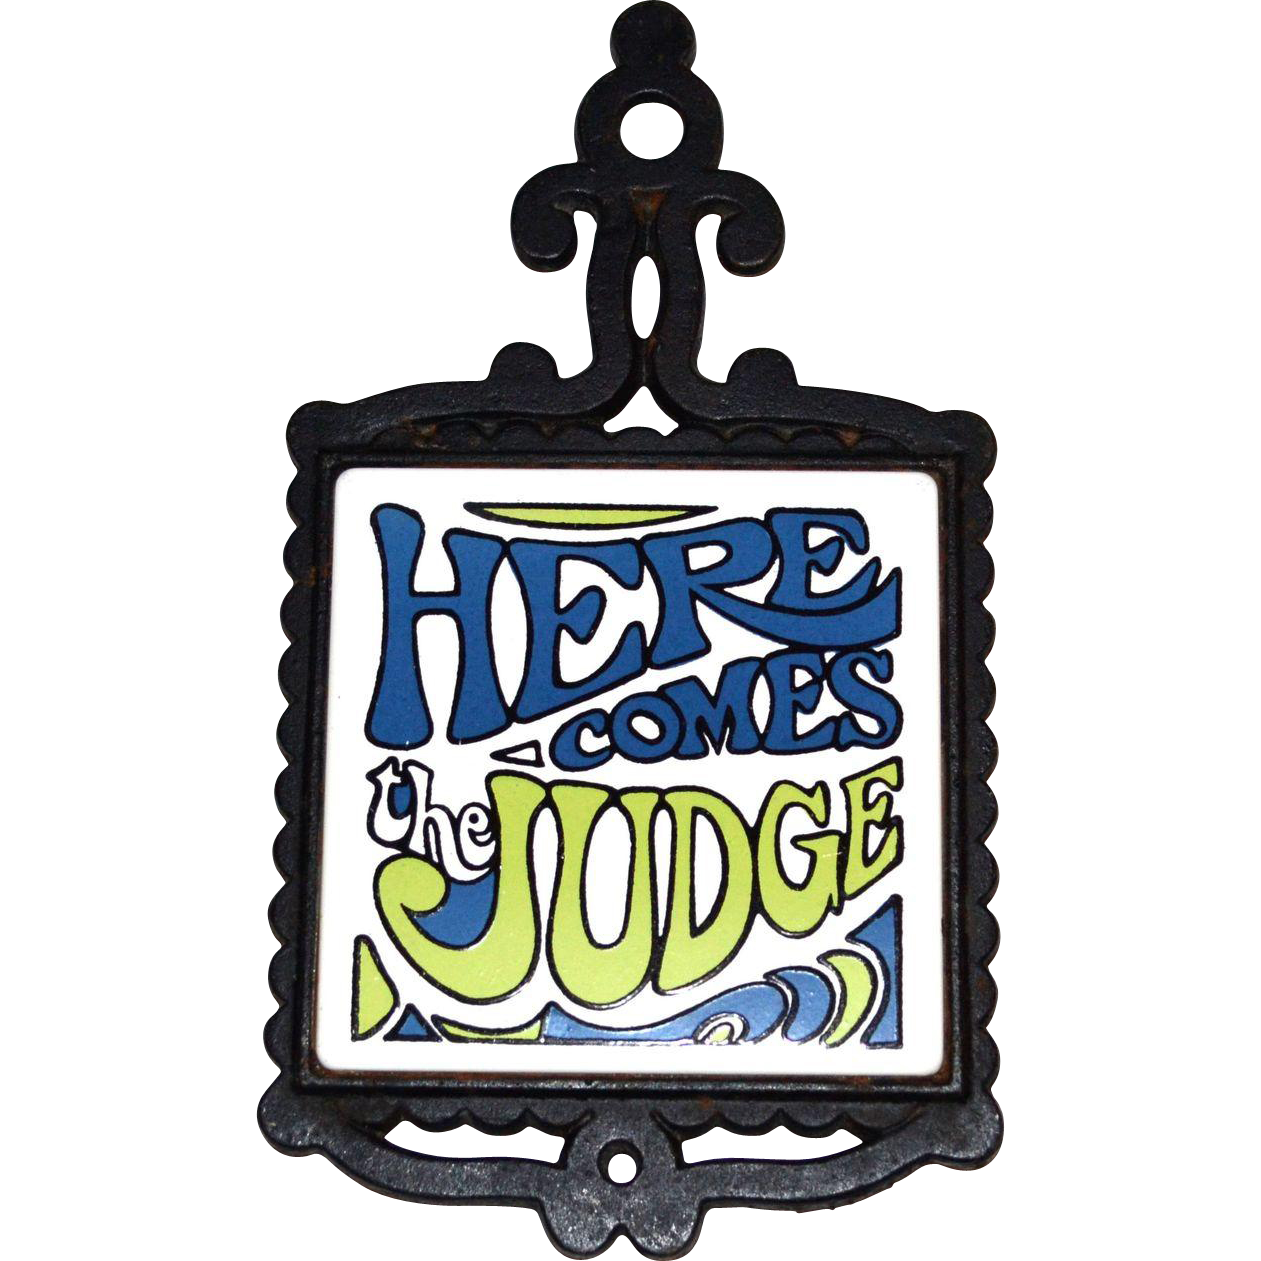 1960s here comes the judge white ceramic tile black cast metal 1960s here comes the judge white ceramic tile black cast metal kitchen trivet dailygadgetfo Images